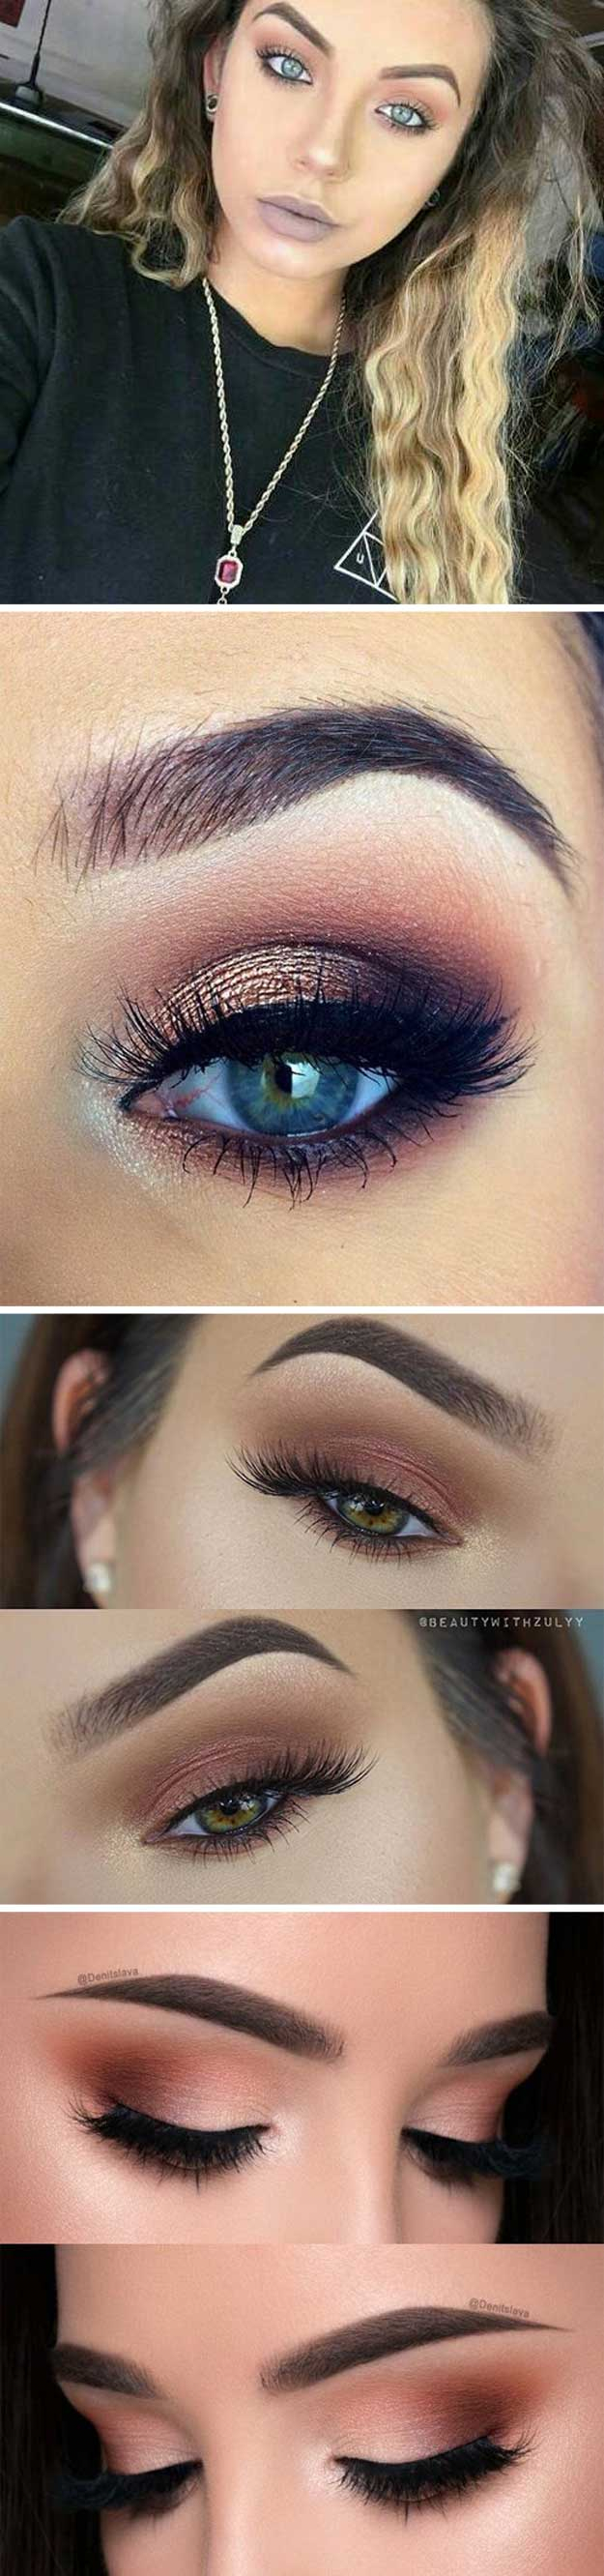 How To Do Makeup For Blue Eyes 35 Wedding Makeup For Blue Eyes The Goddess